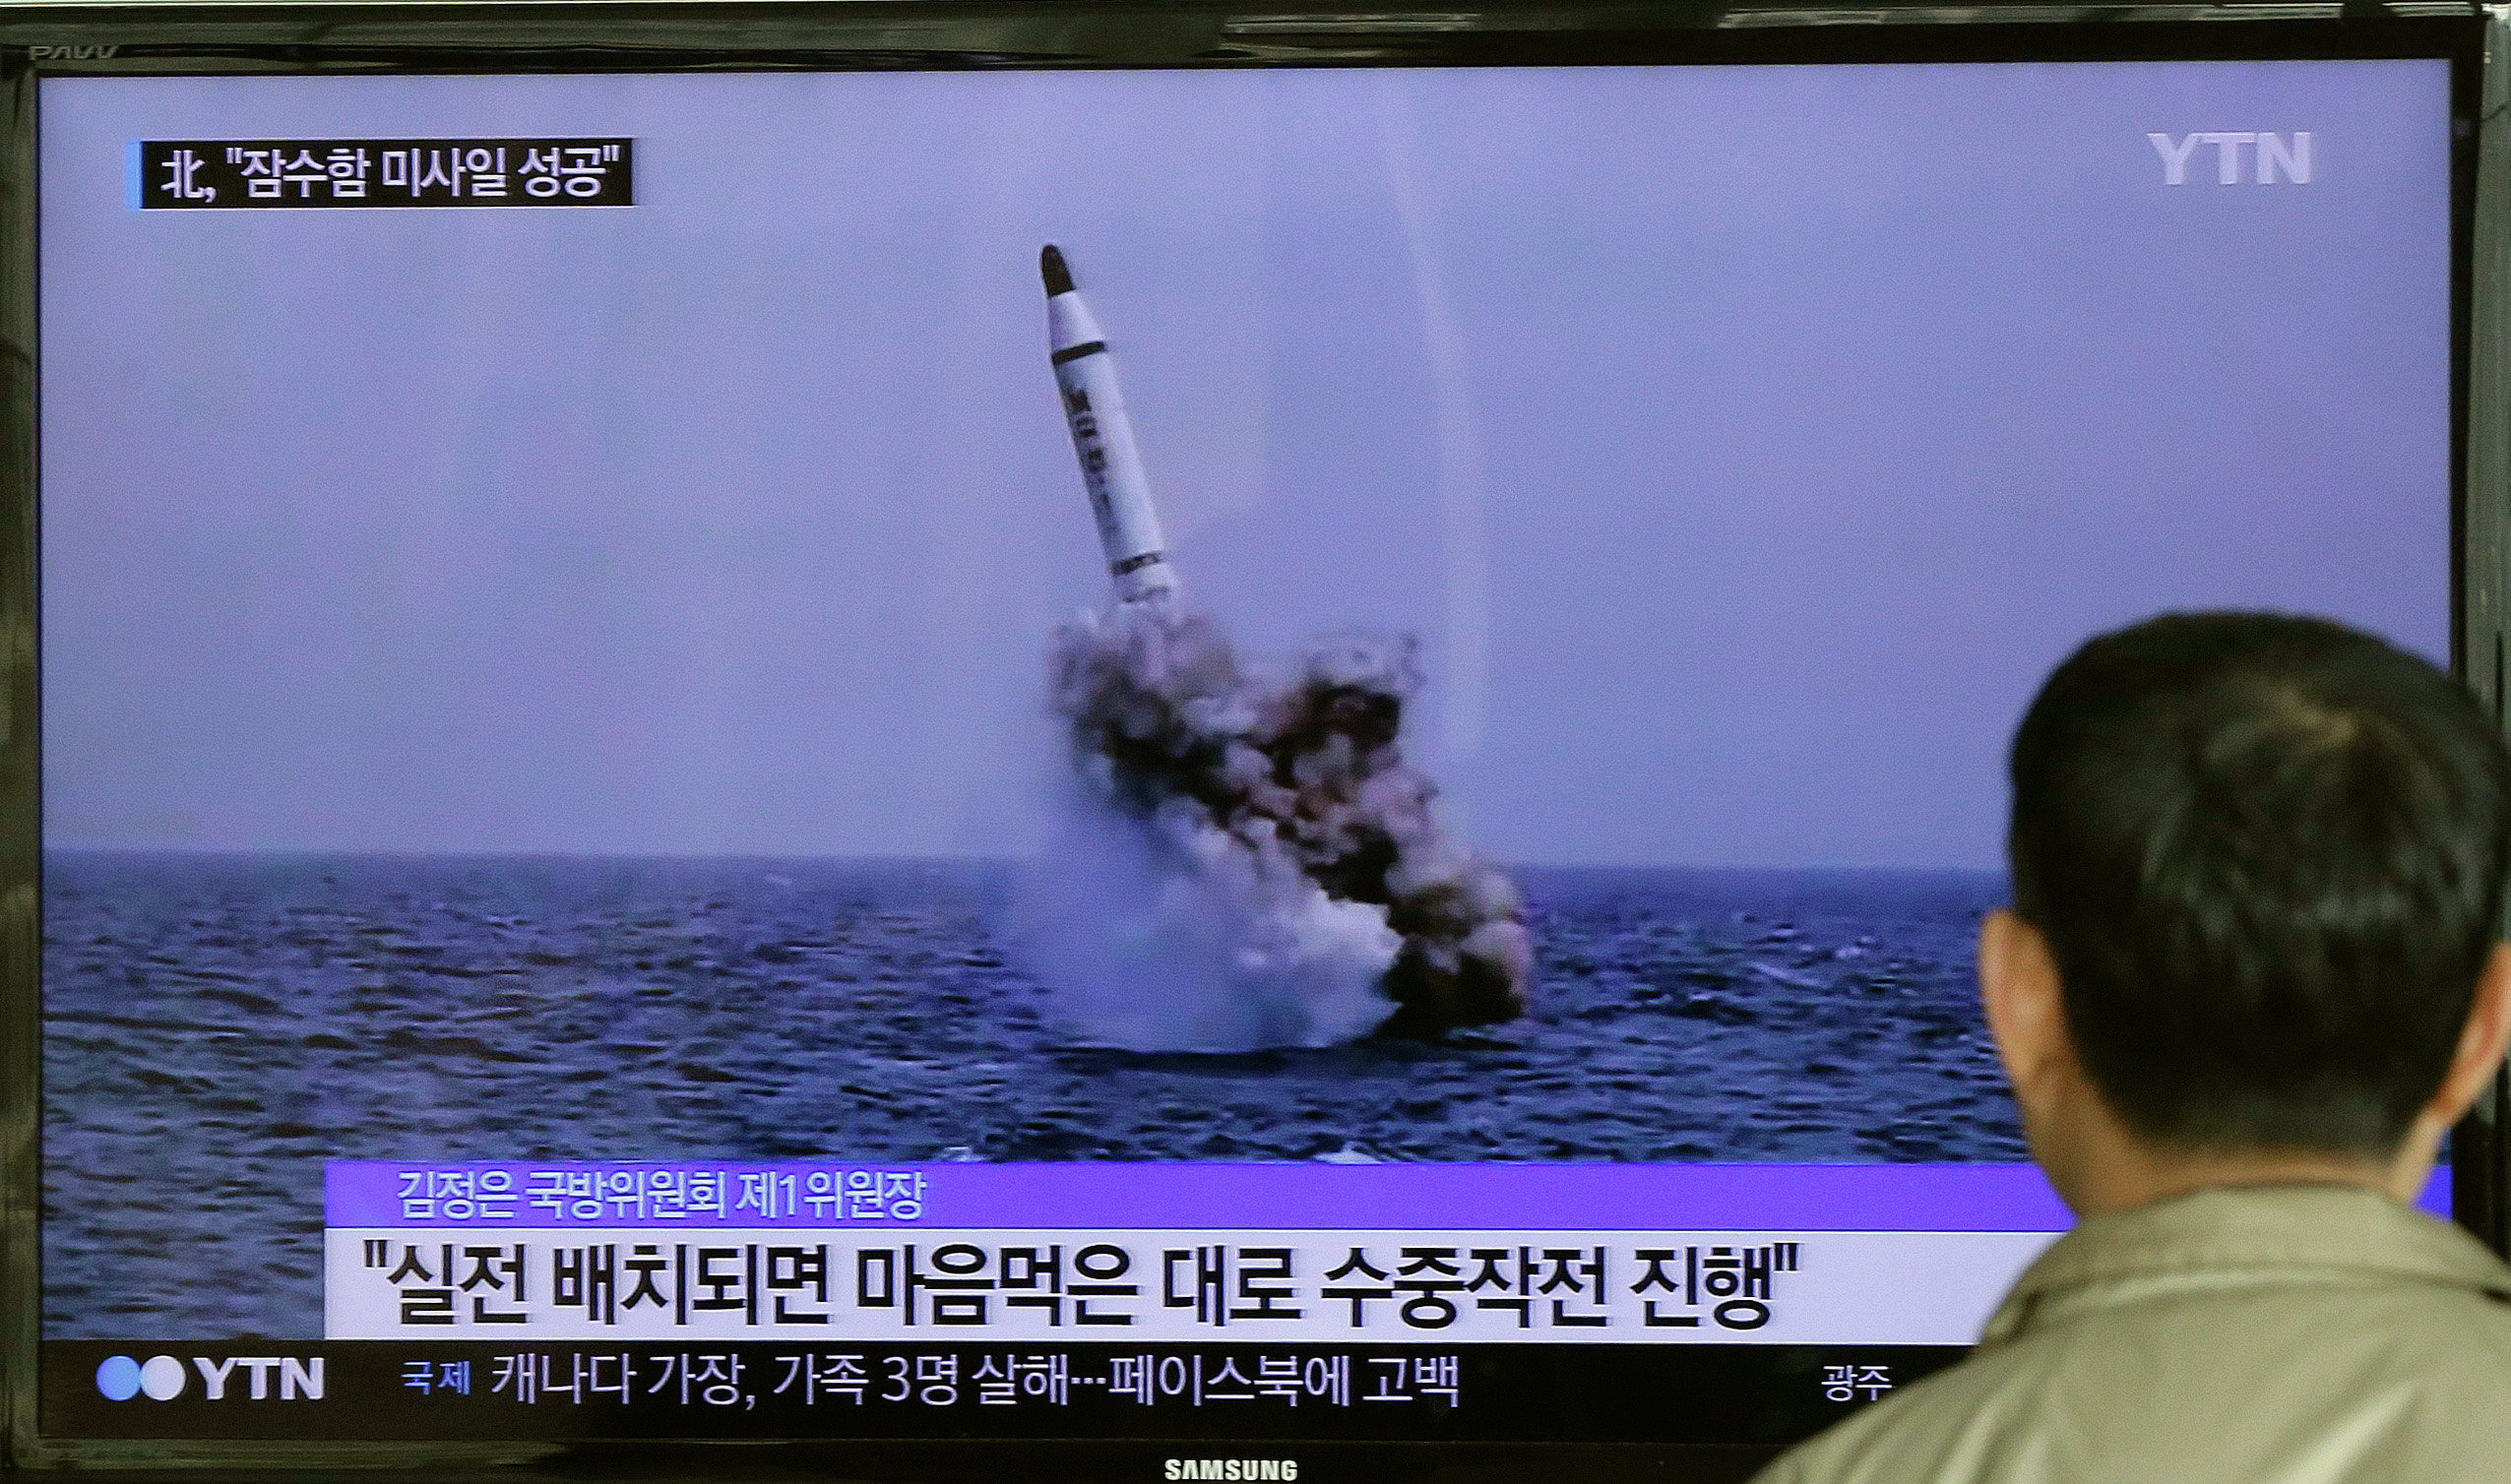 A South Korean man watches a TV news program showing an image published in North Korea's Rodong Sinmun newspaper of North Korea's ballistic missile believed to have been launched from underwater, at Seoul Railway station in Seoul, South Korea, Saturday, May 9, 2015